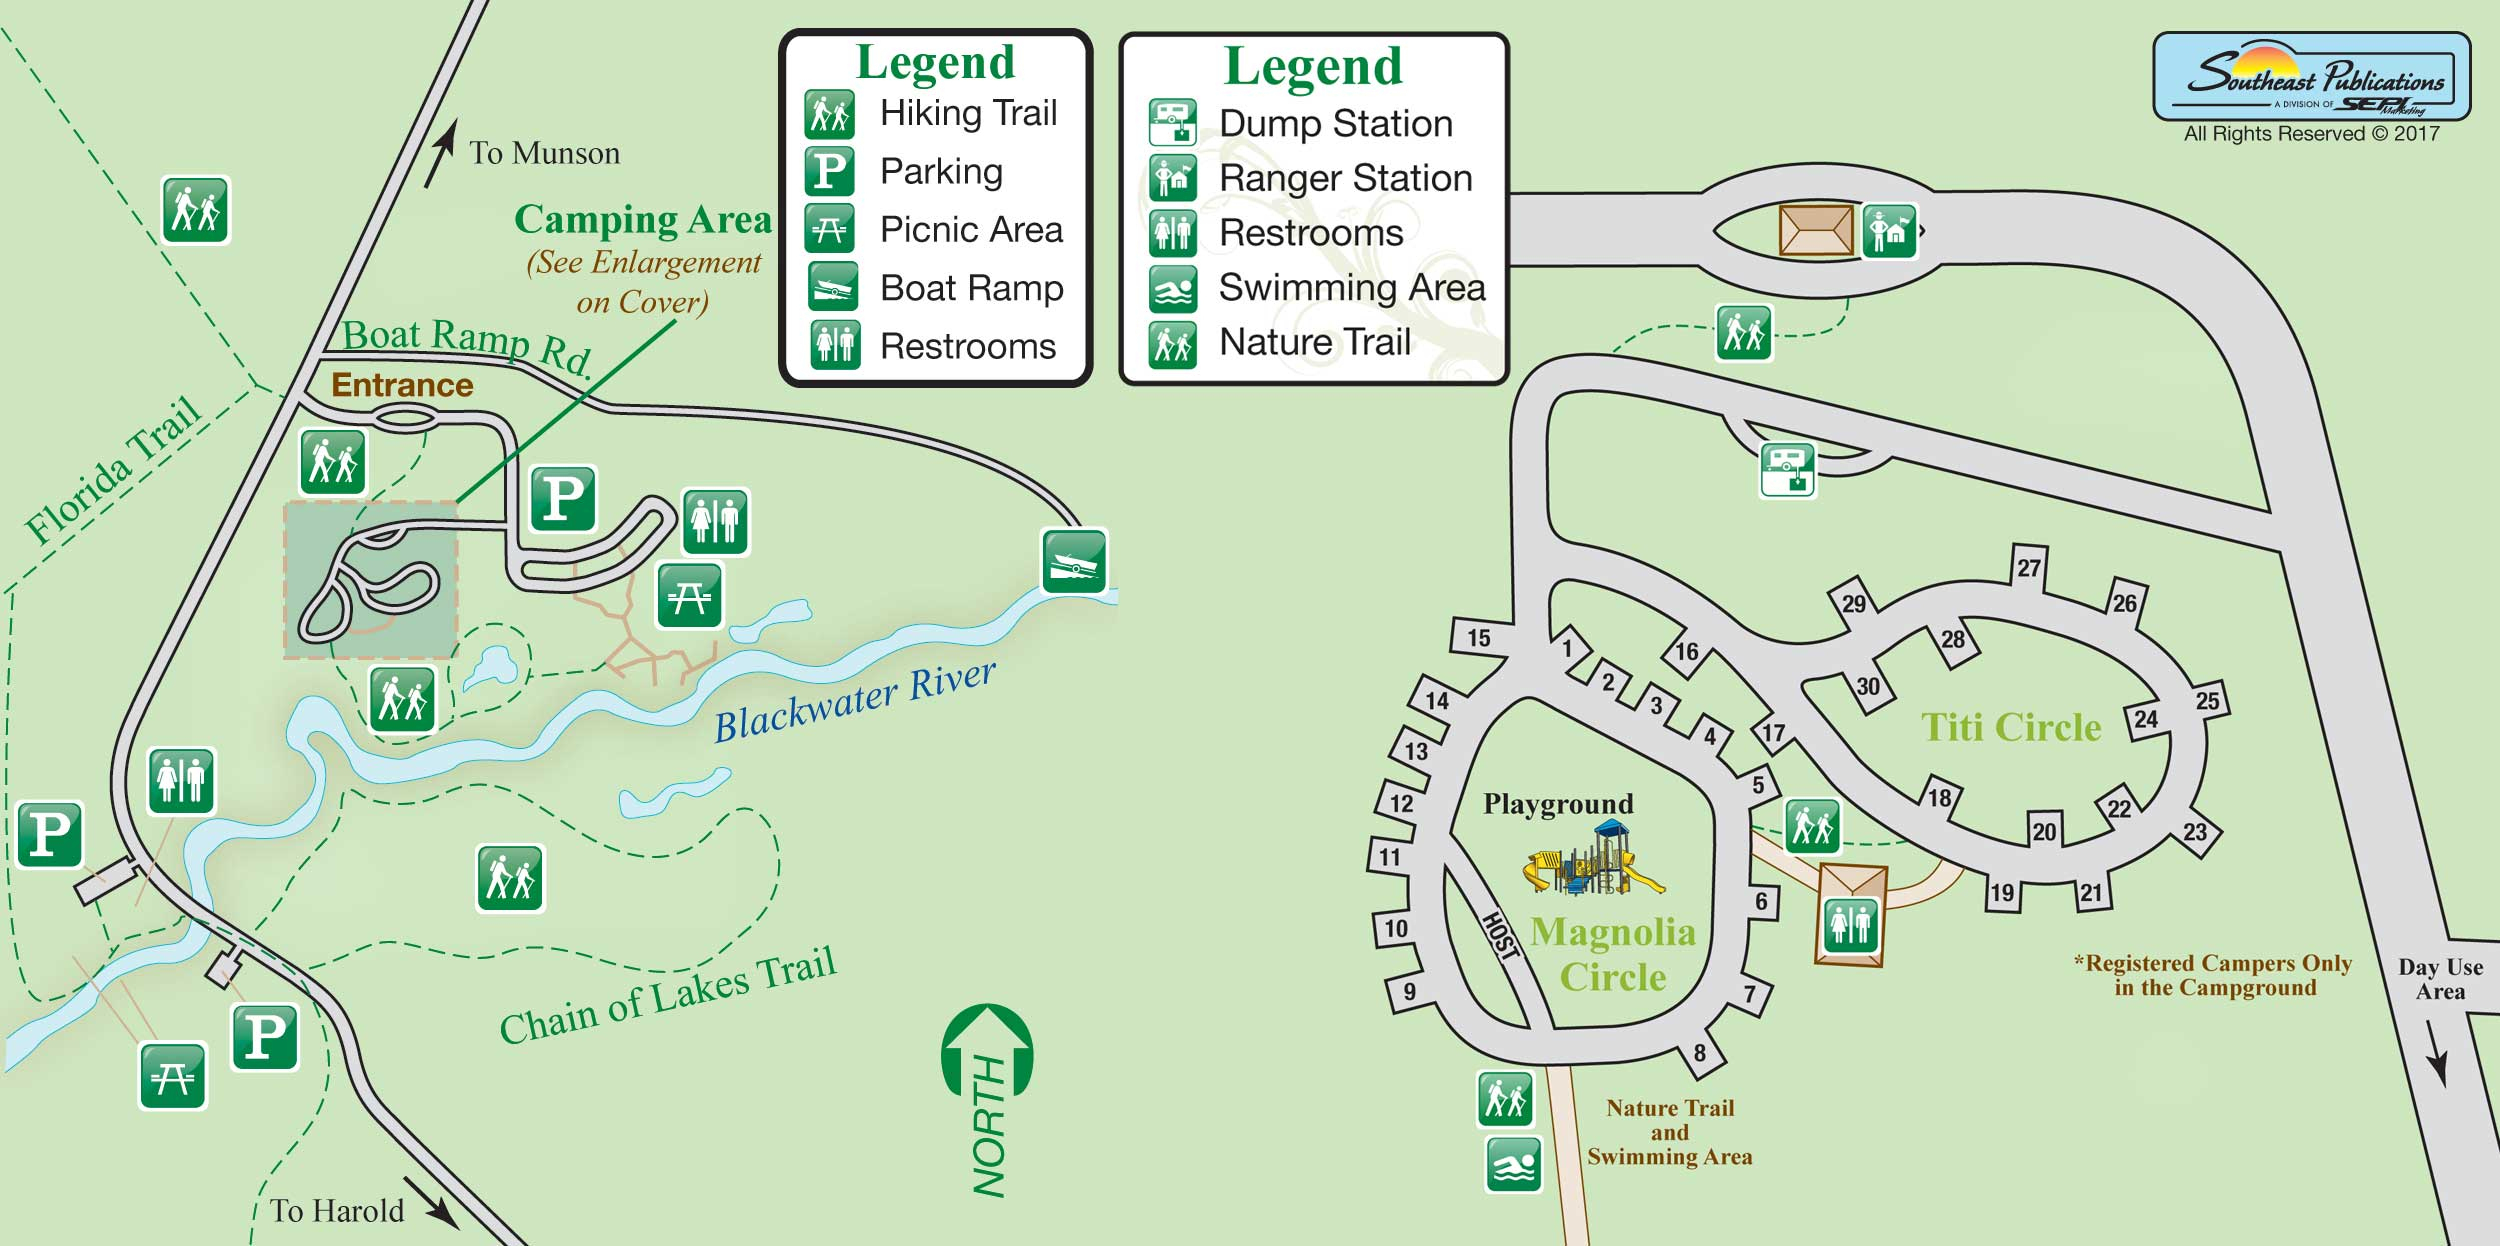 Florida State Parks Rv Camping - Know Your Campground - Florida State Parks Camping Map